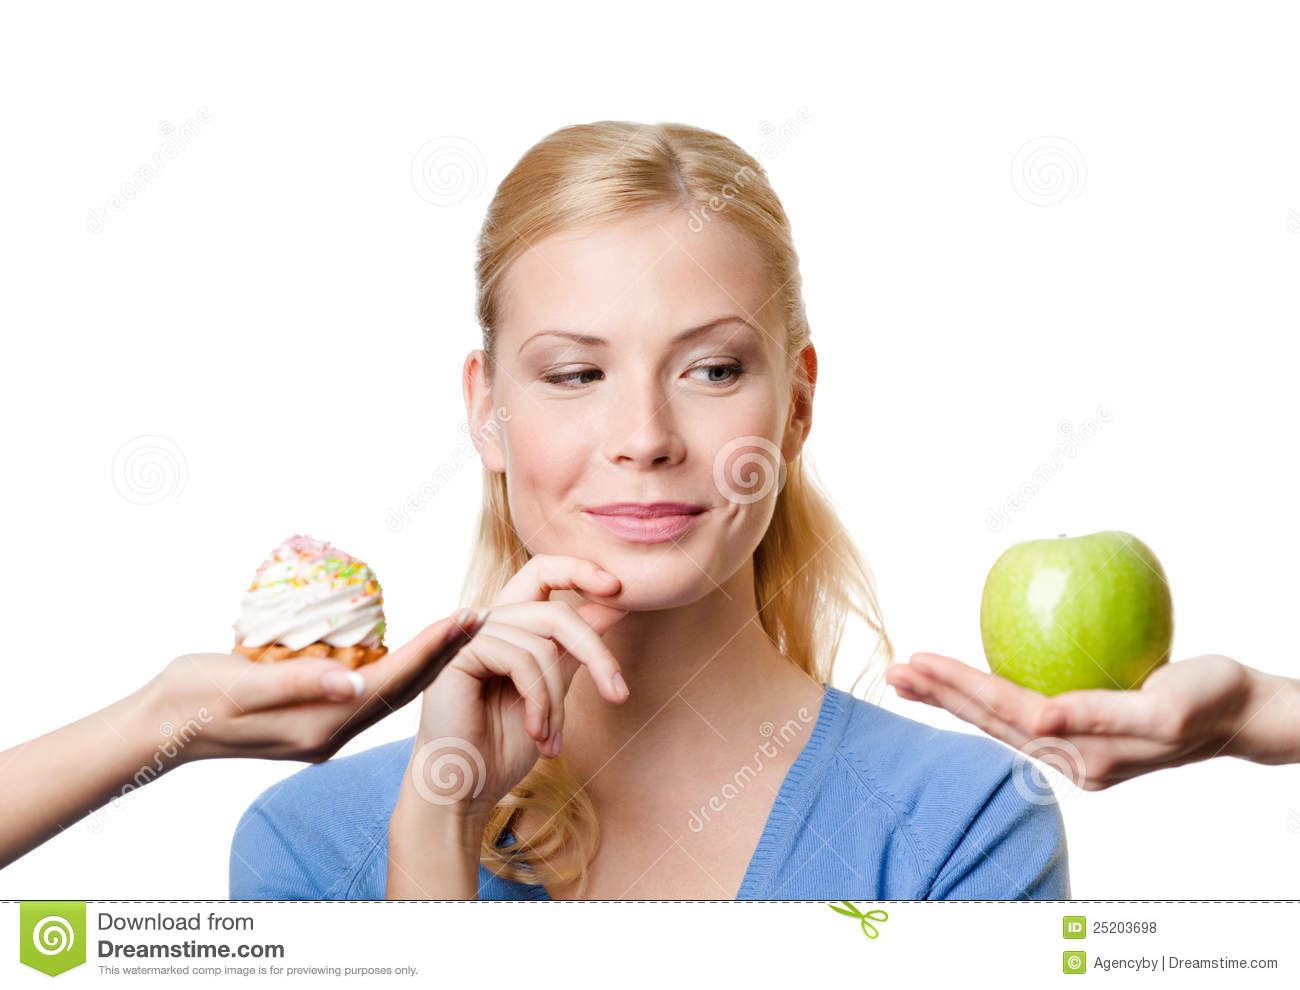 Young woman makes a choice between cake and apple